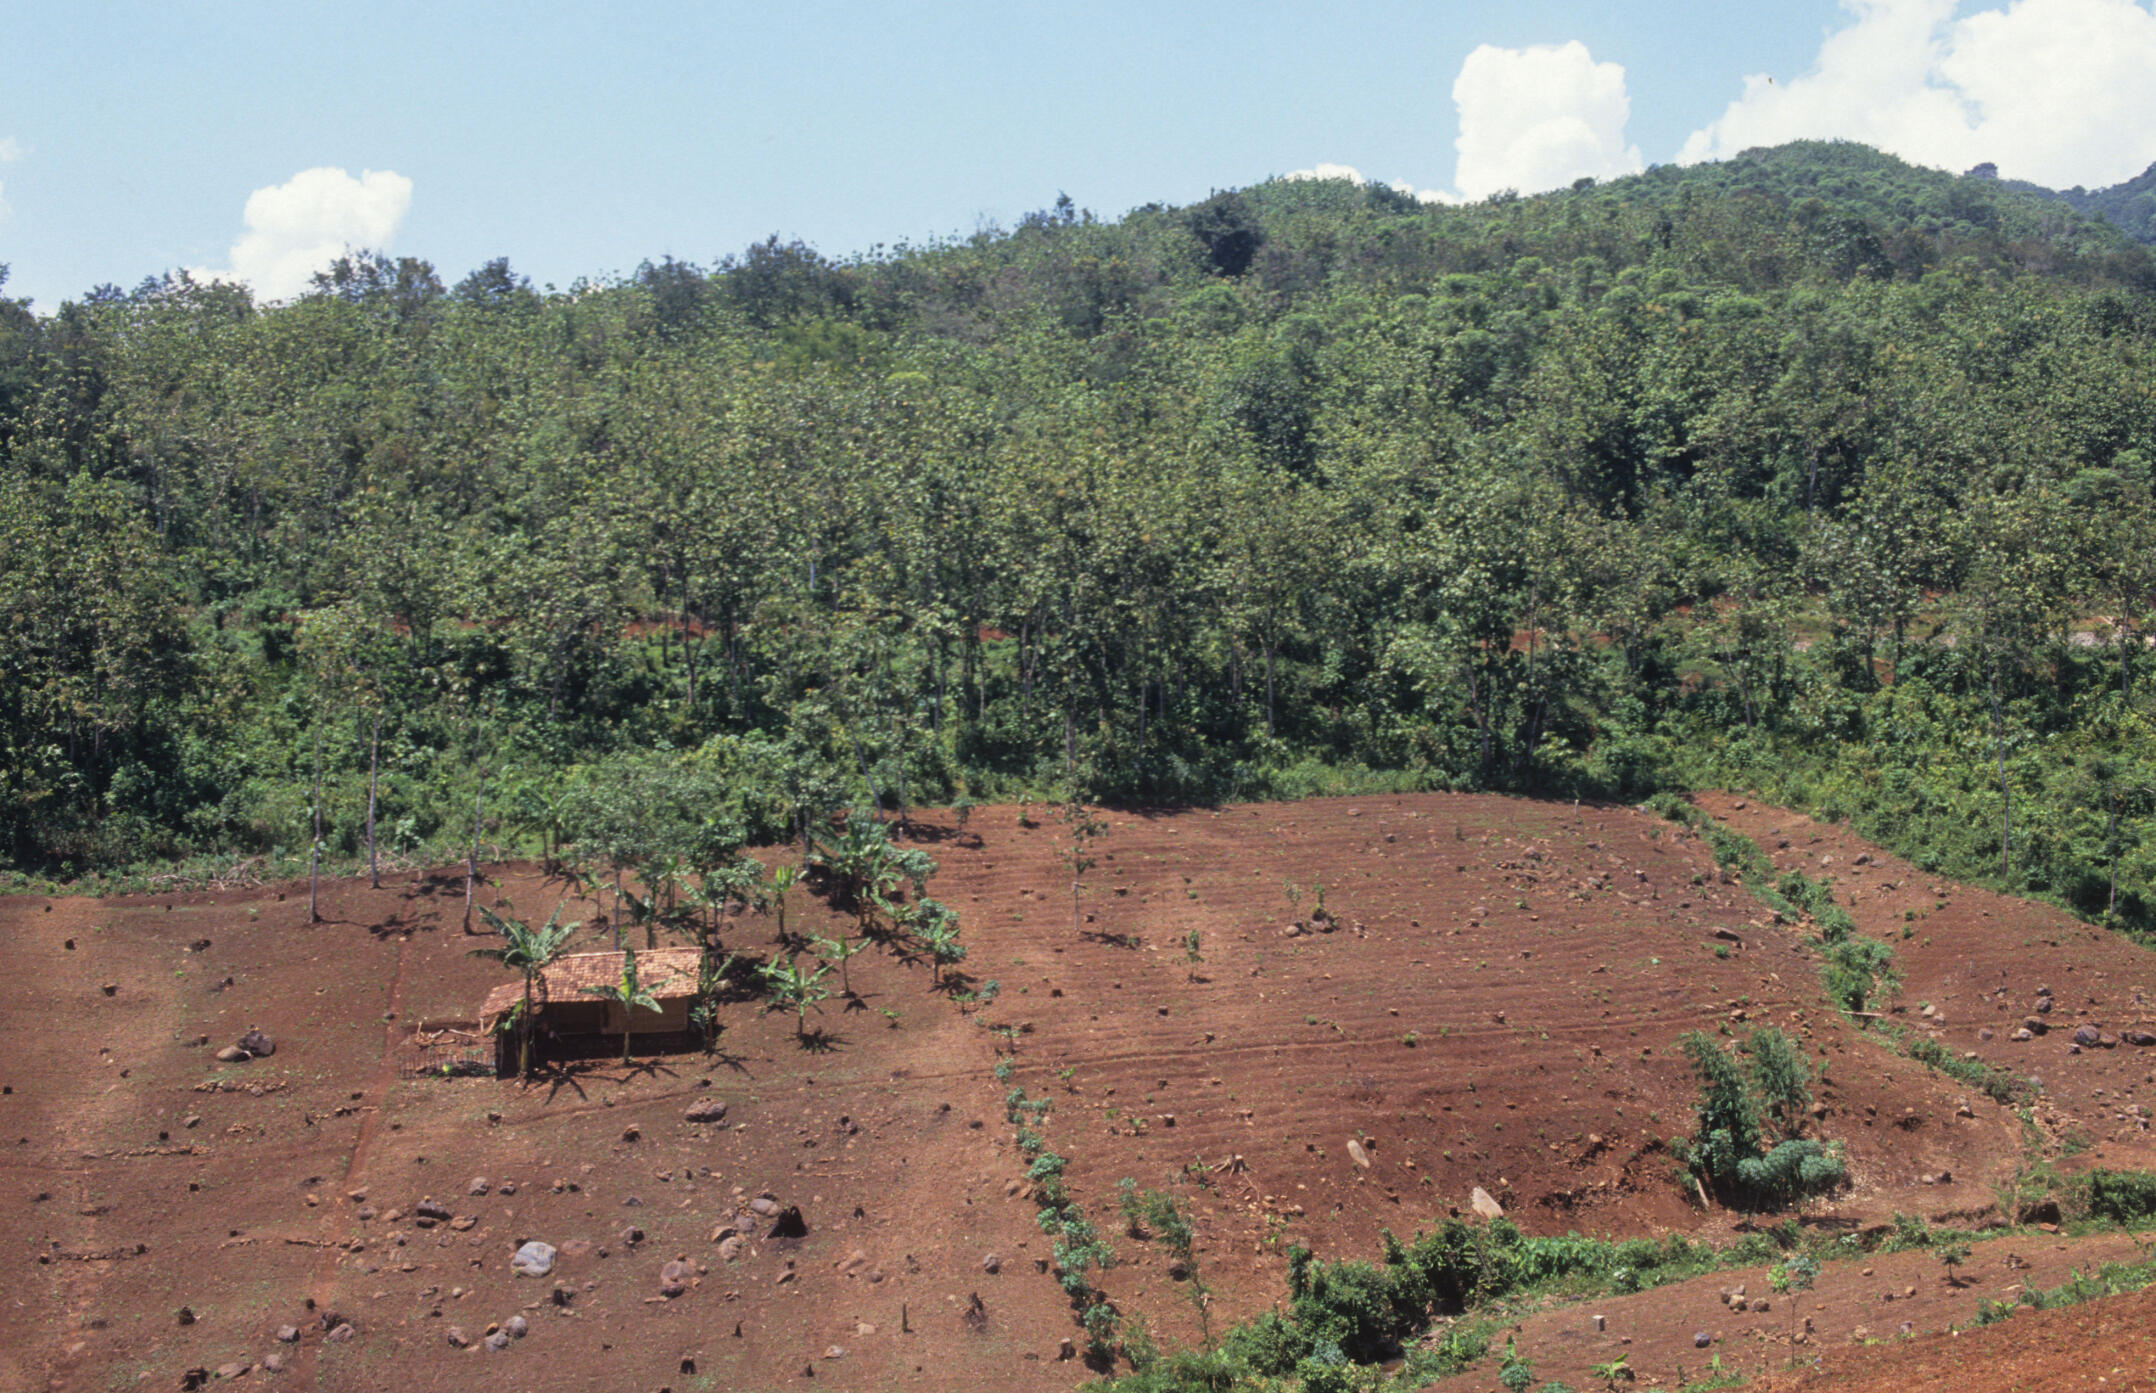 Deforestation in Indonesia, usually illegal.